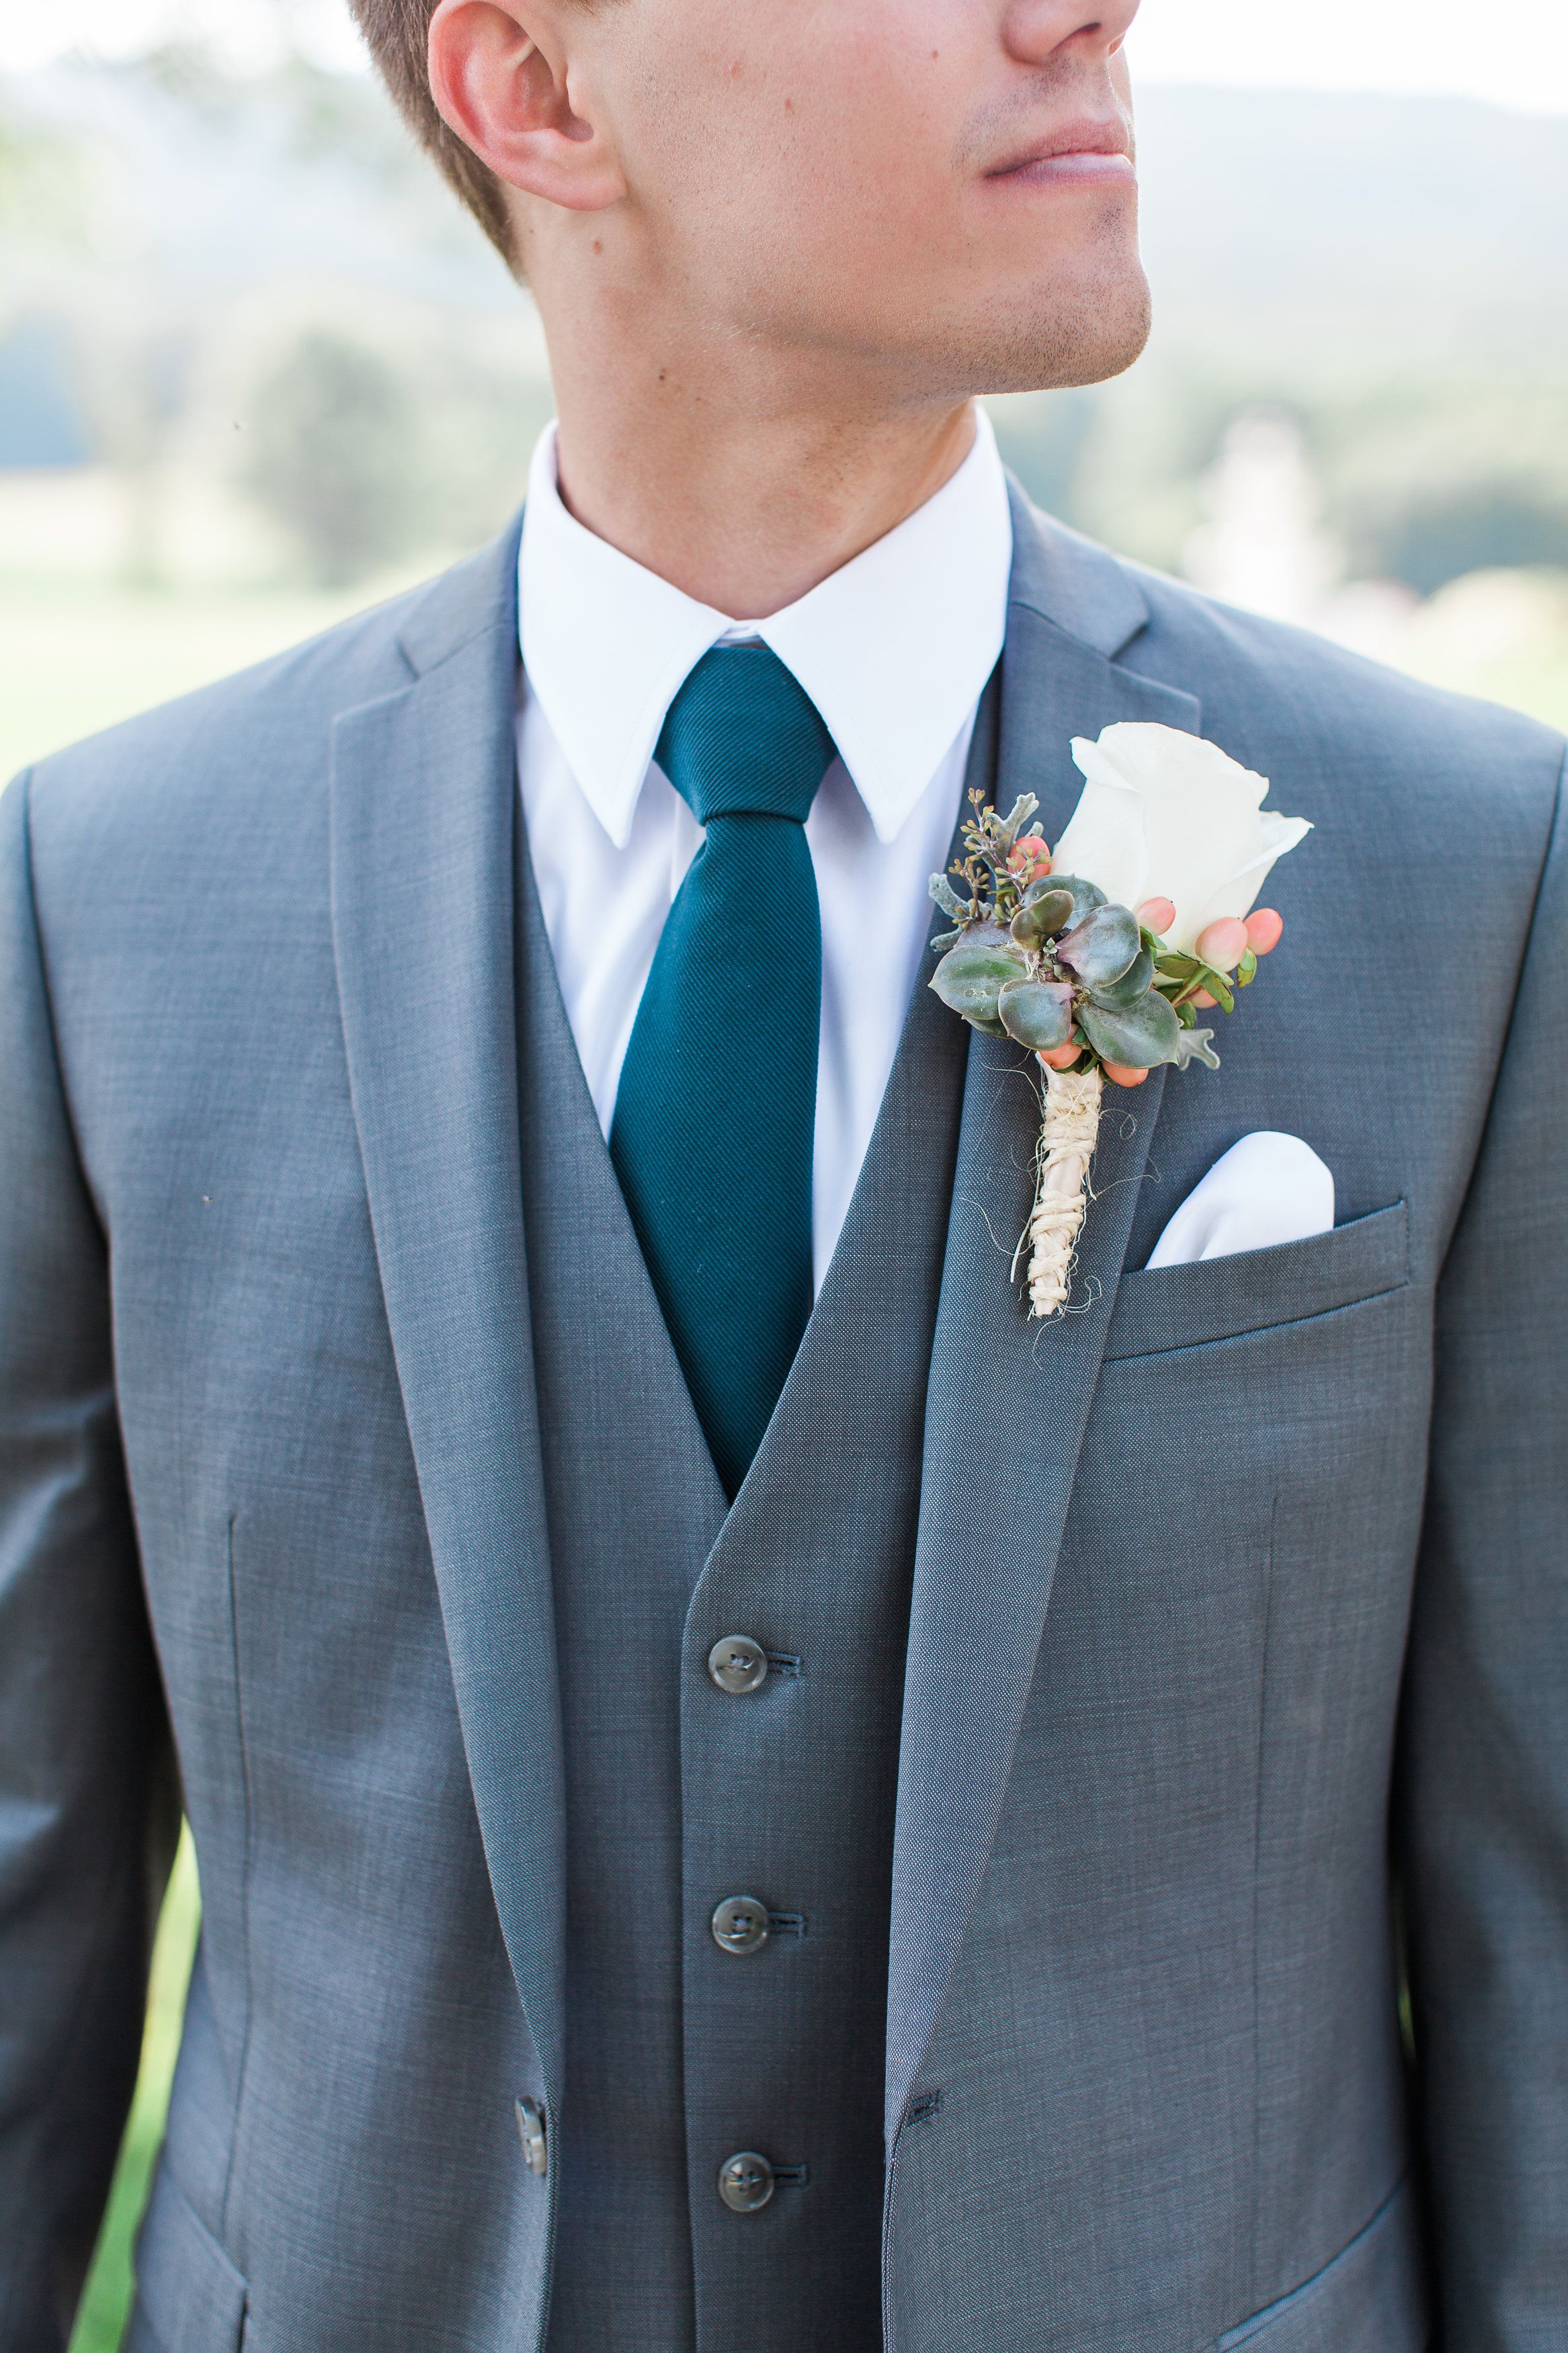 Spring groom outfit idea - gray suit with teal necktie + white ...